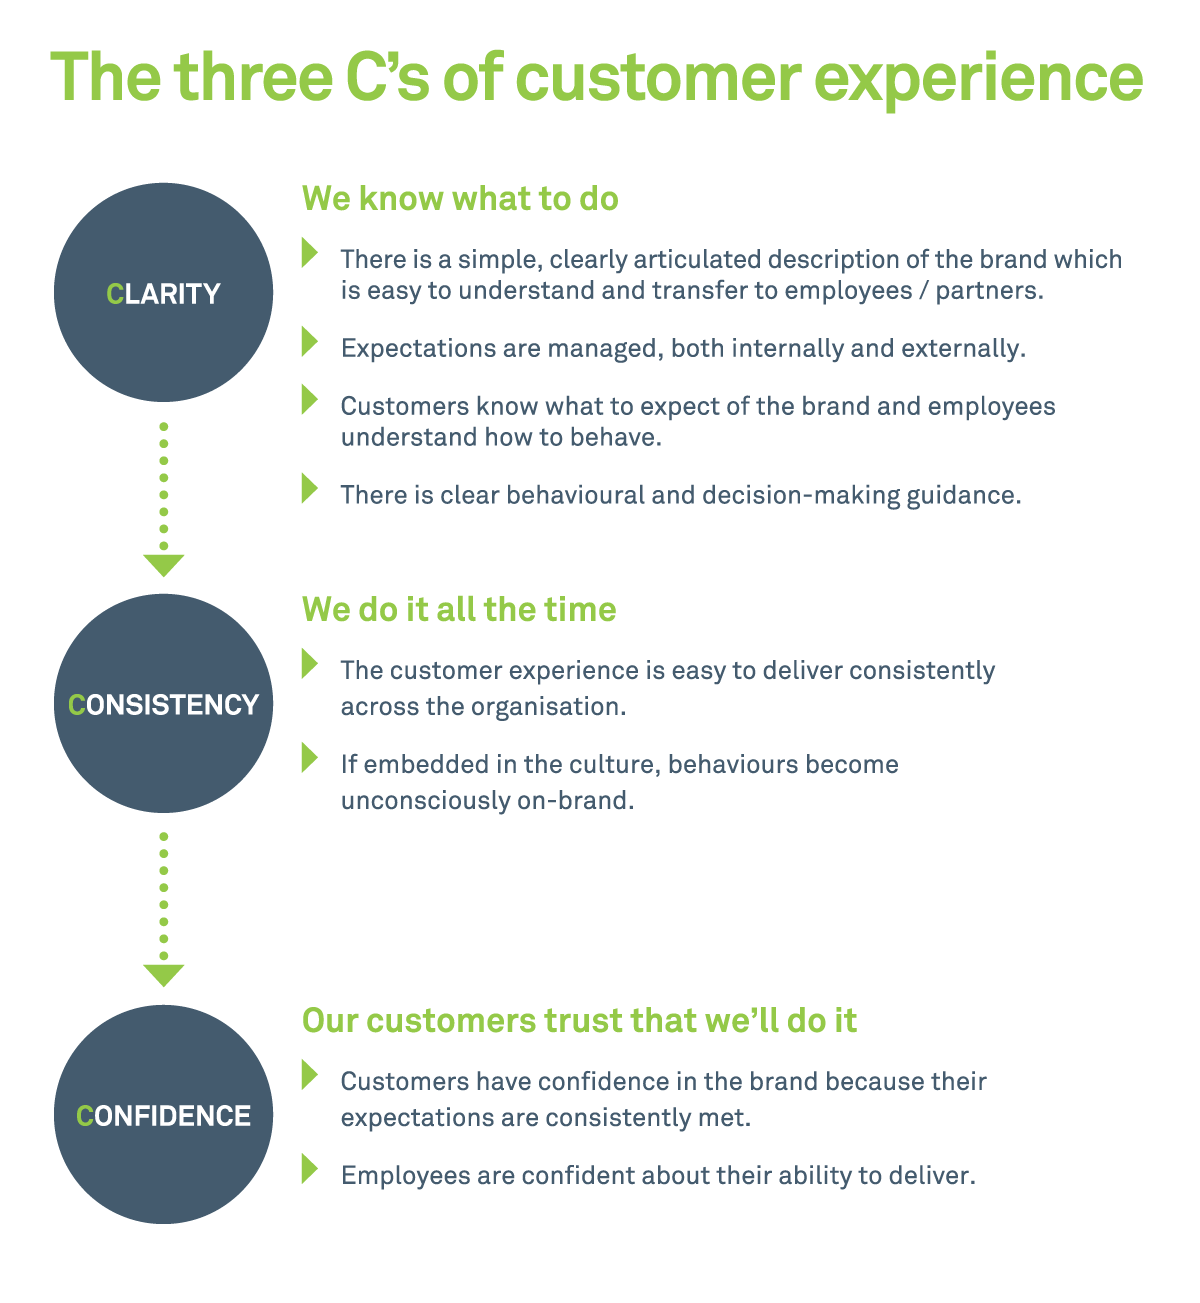 3 C's of Customer Experience infographic